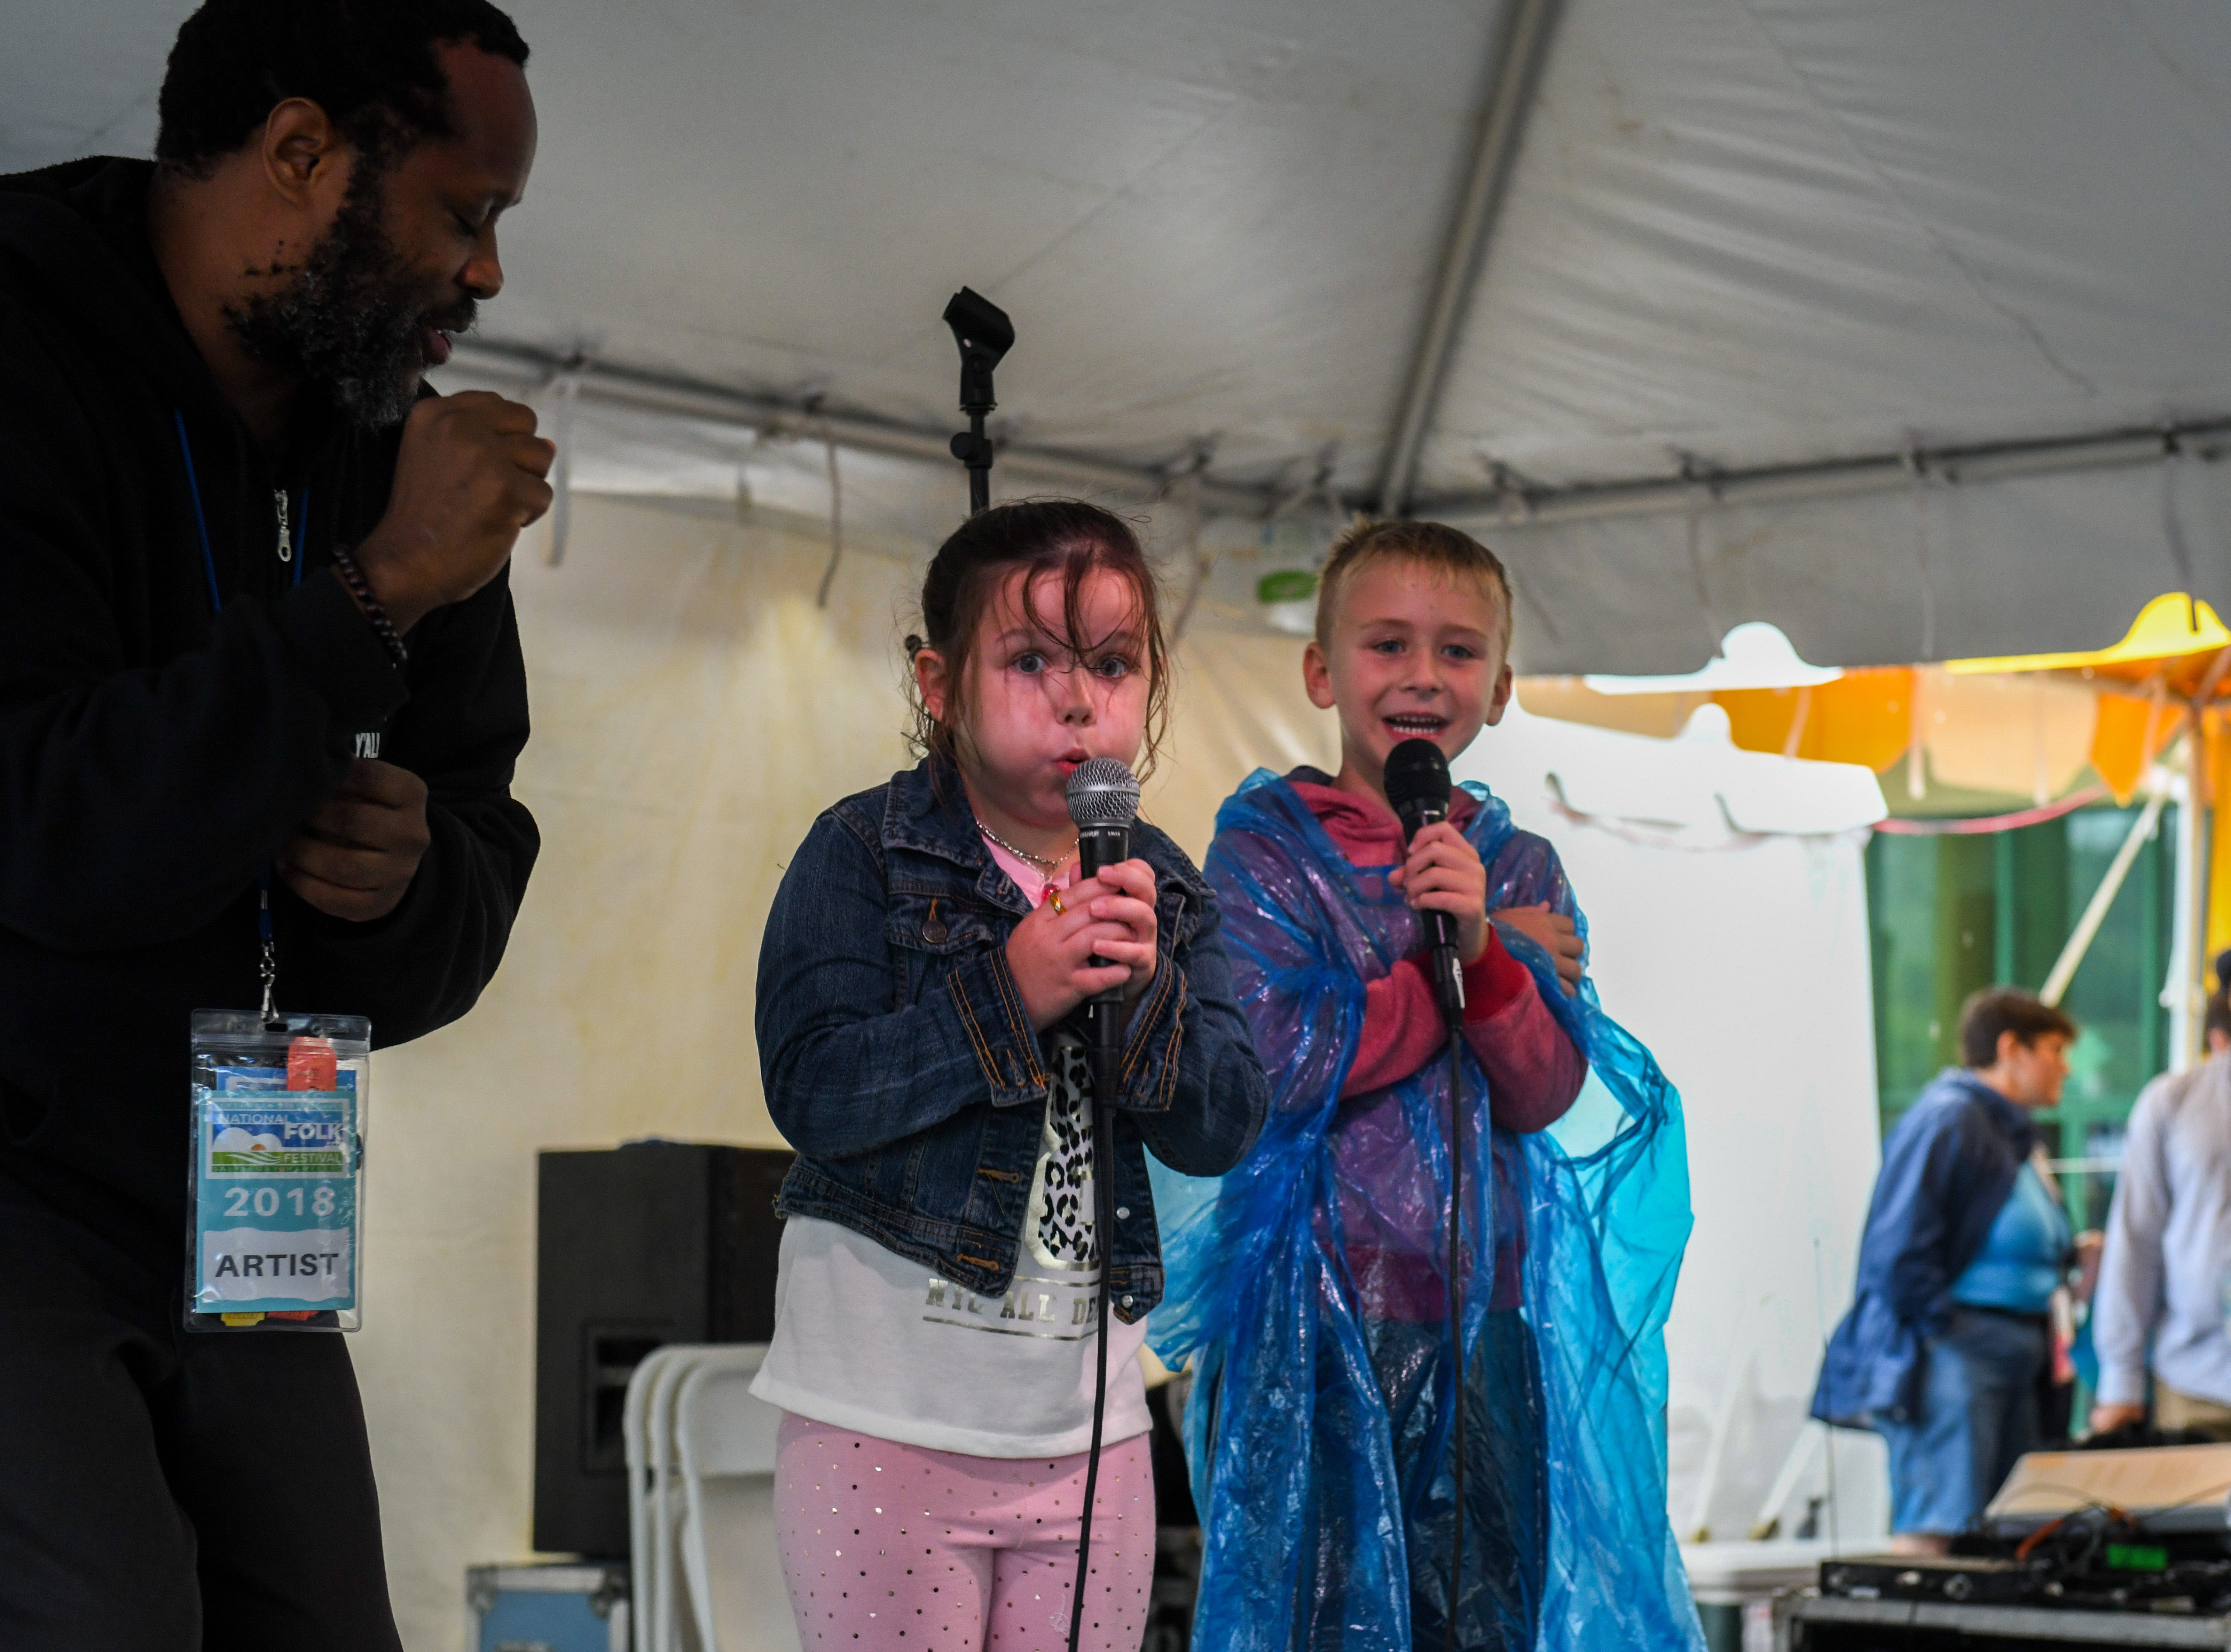 7-year-old Ruby Ludwick learns some beatboxing sounds from Shodekeh at the National Folk Festival in Salisbury on Sunday, Sept. 9.